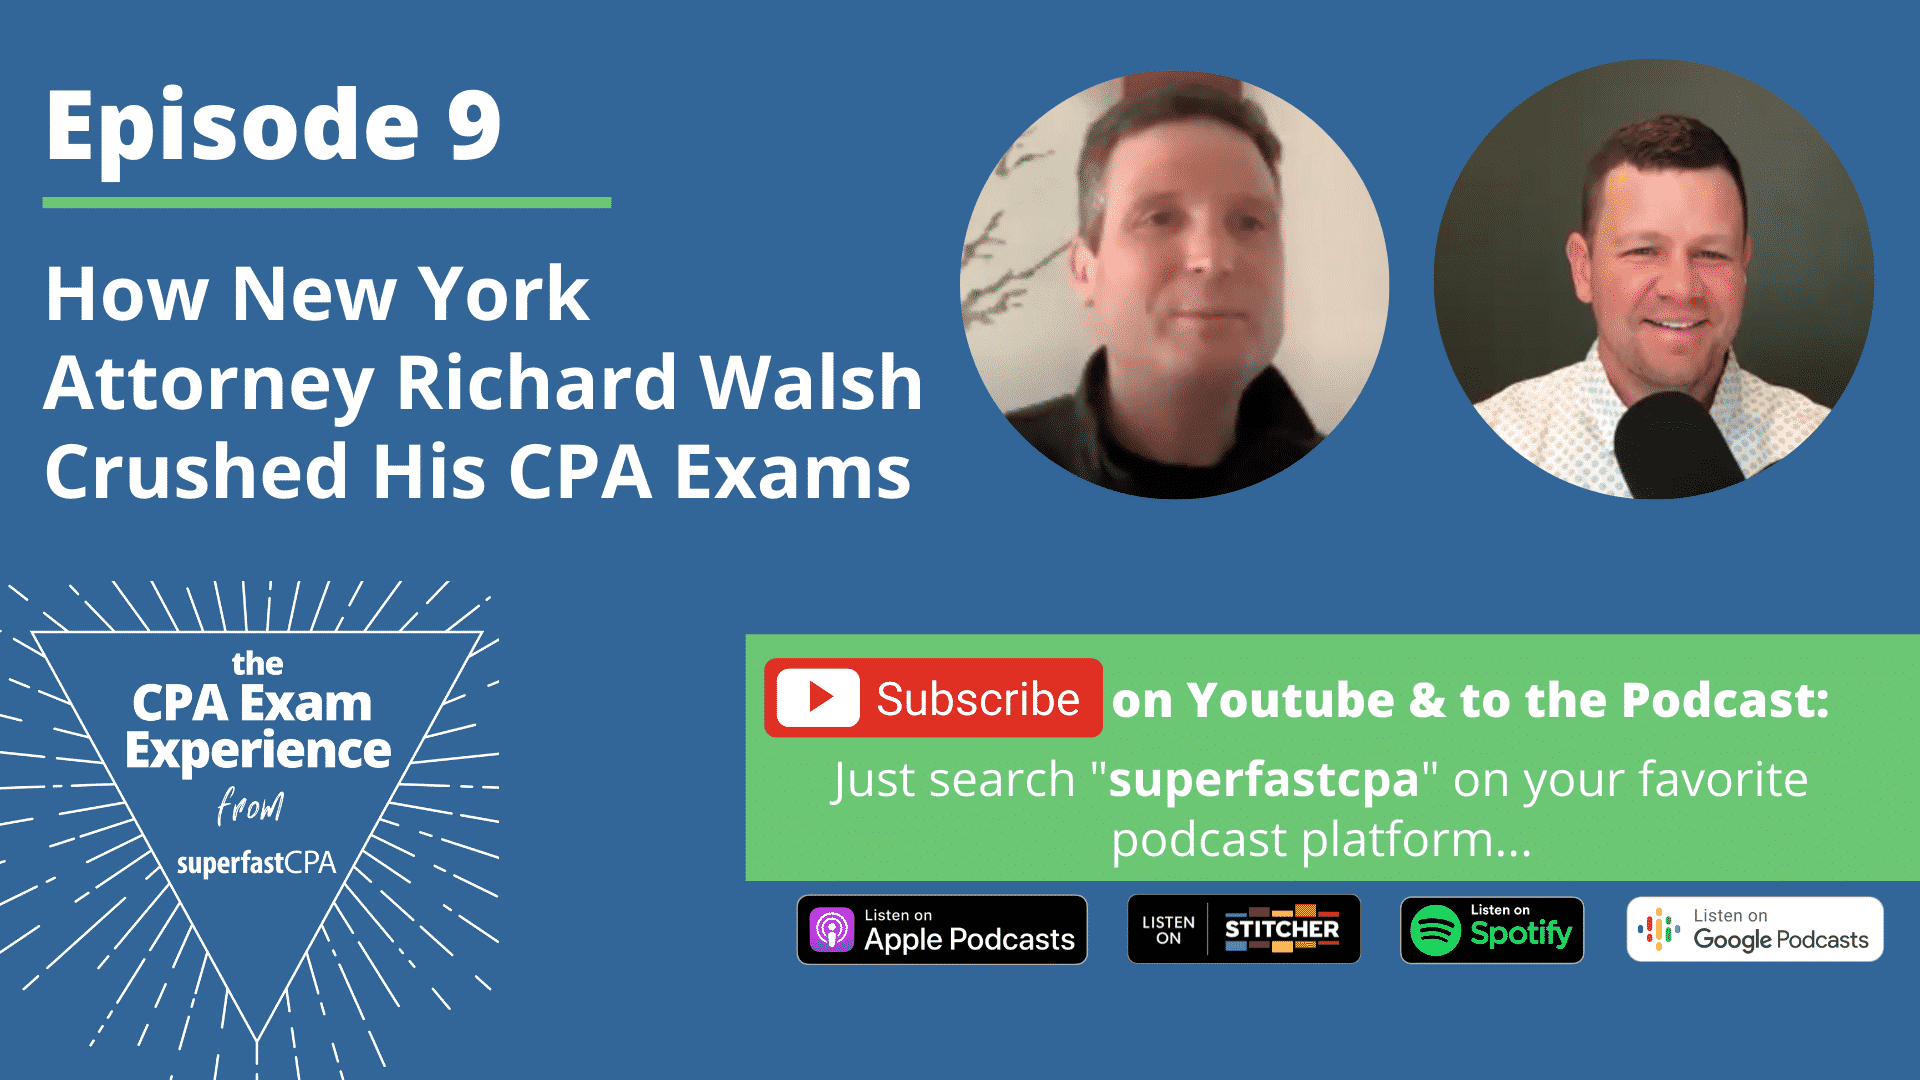 how richard walsh passed his cpa exams